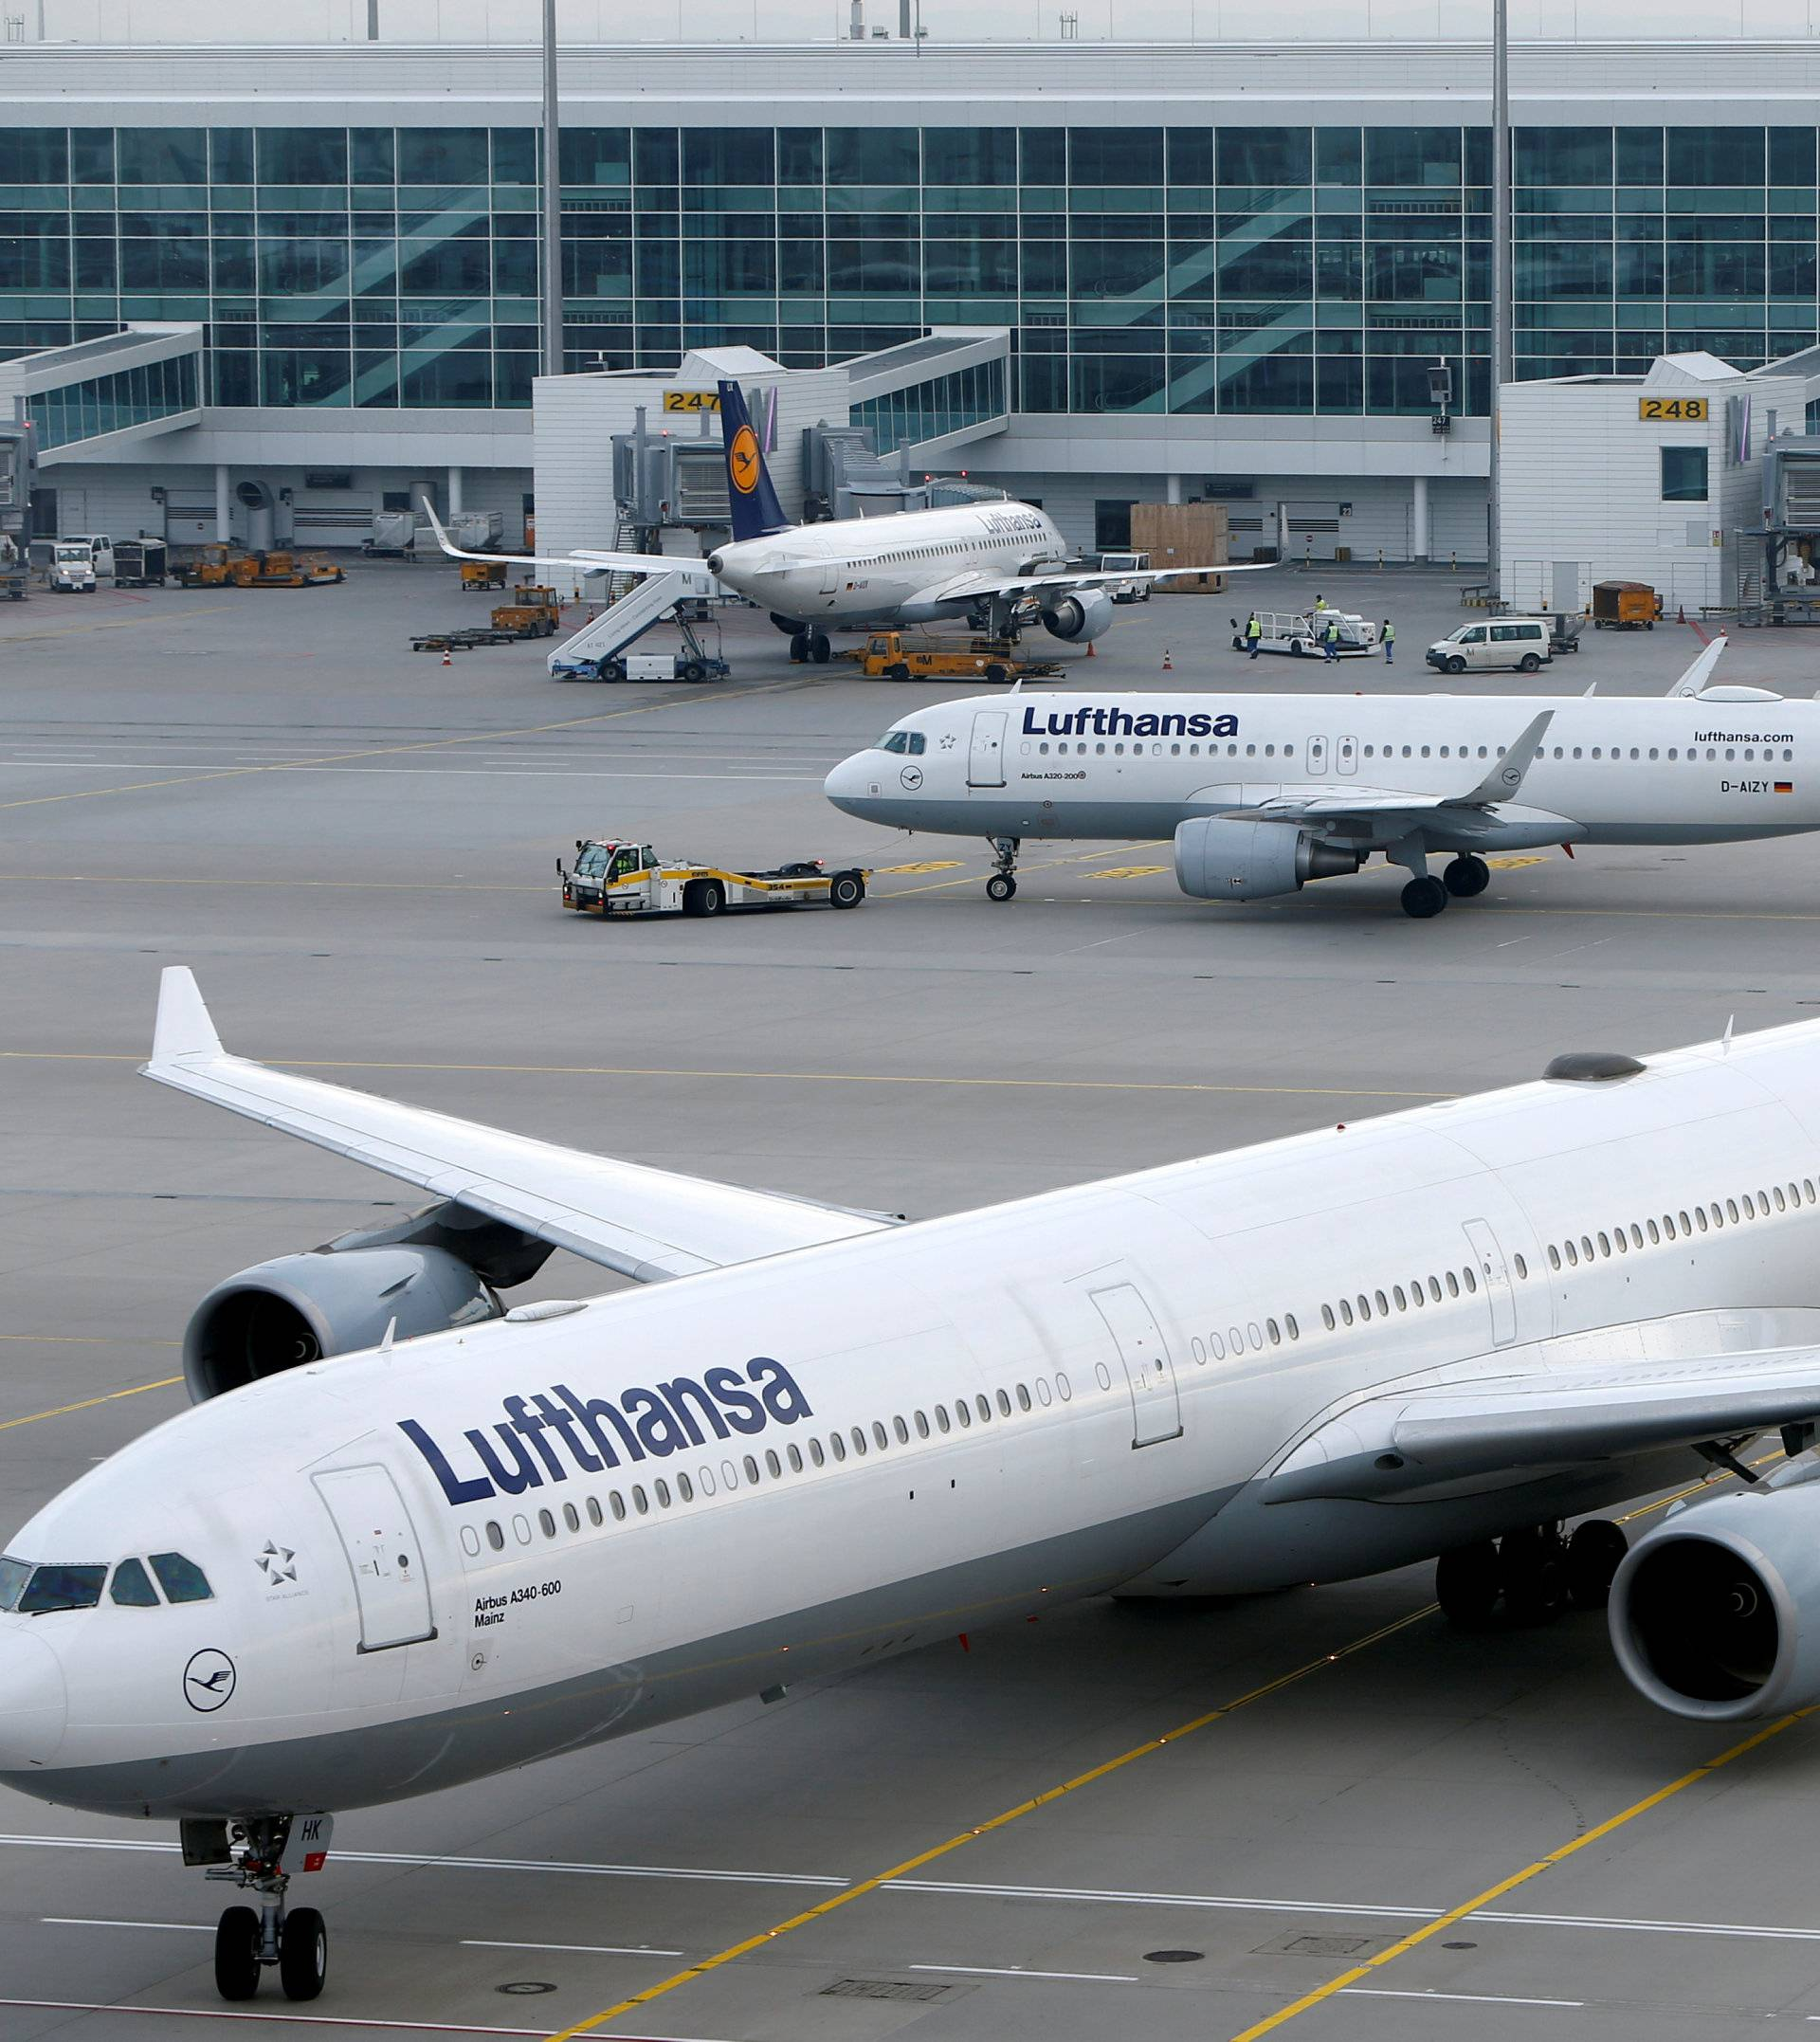 FILE PHOTO: Lufthansa planes arrive at the international airport in Munich